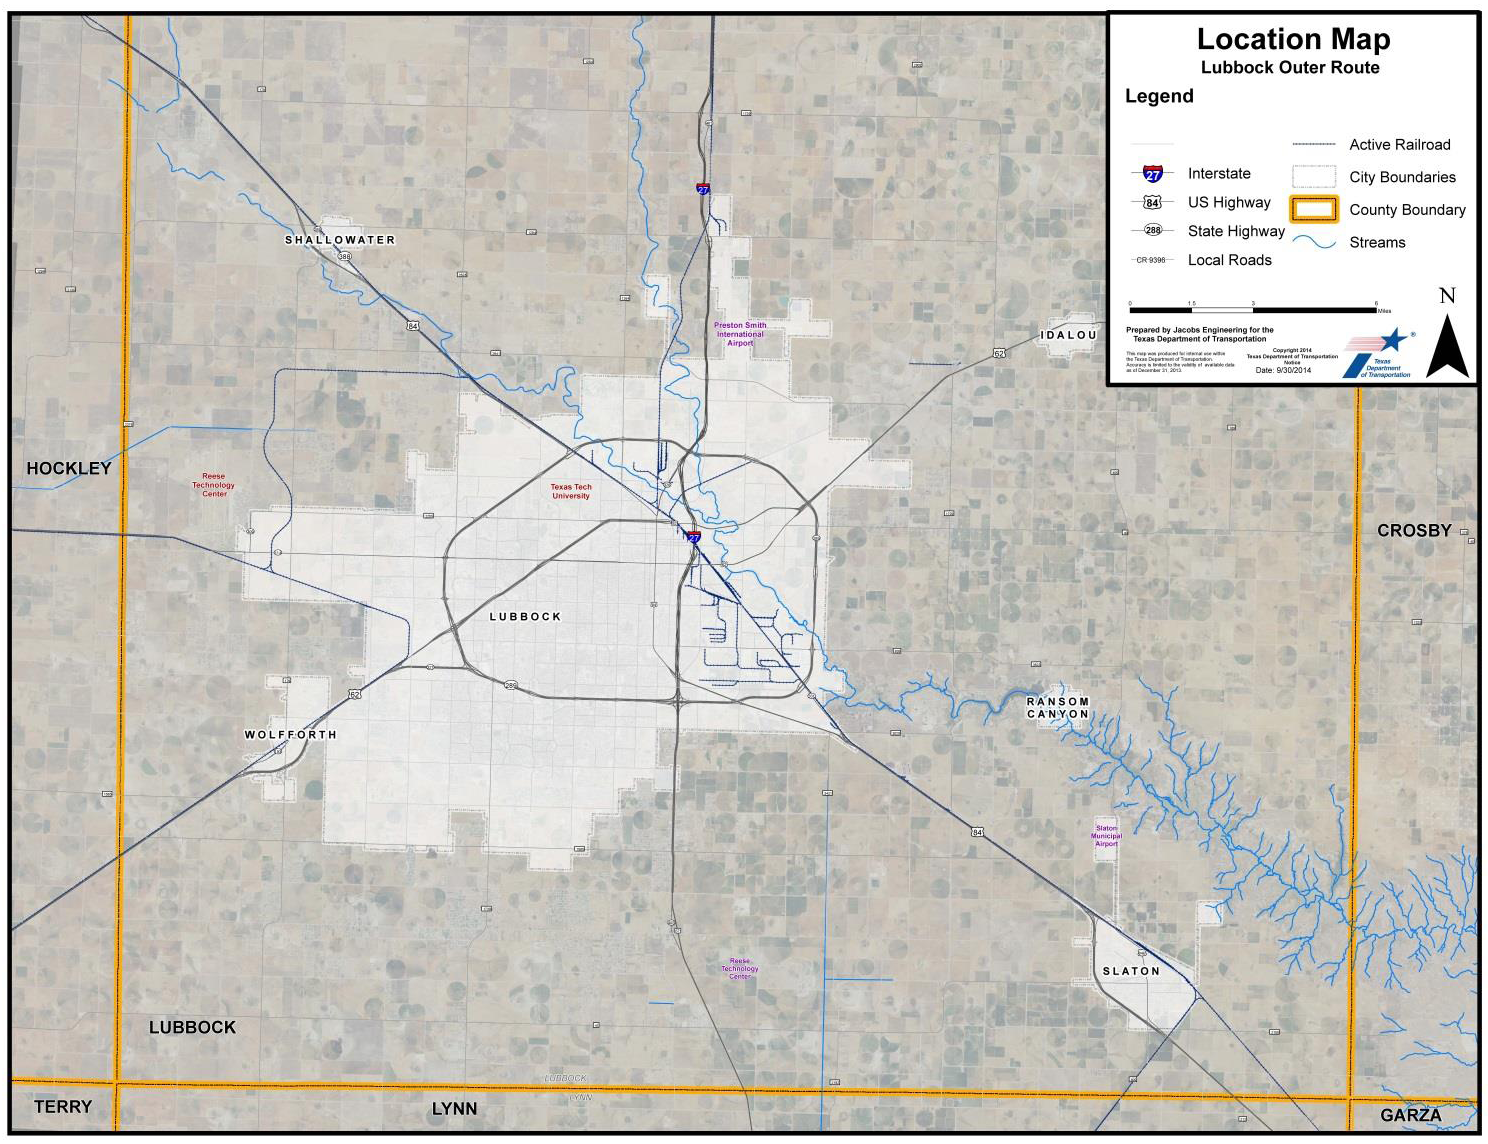 Highway Network North And East Of Us 87 Therefore The North And Eastern Portions Of The Loop Concept Were Eliminated From Further Discussion